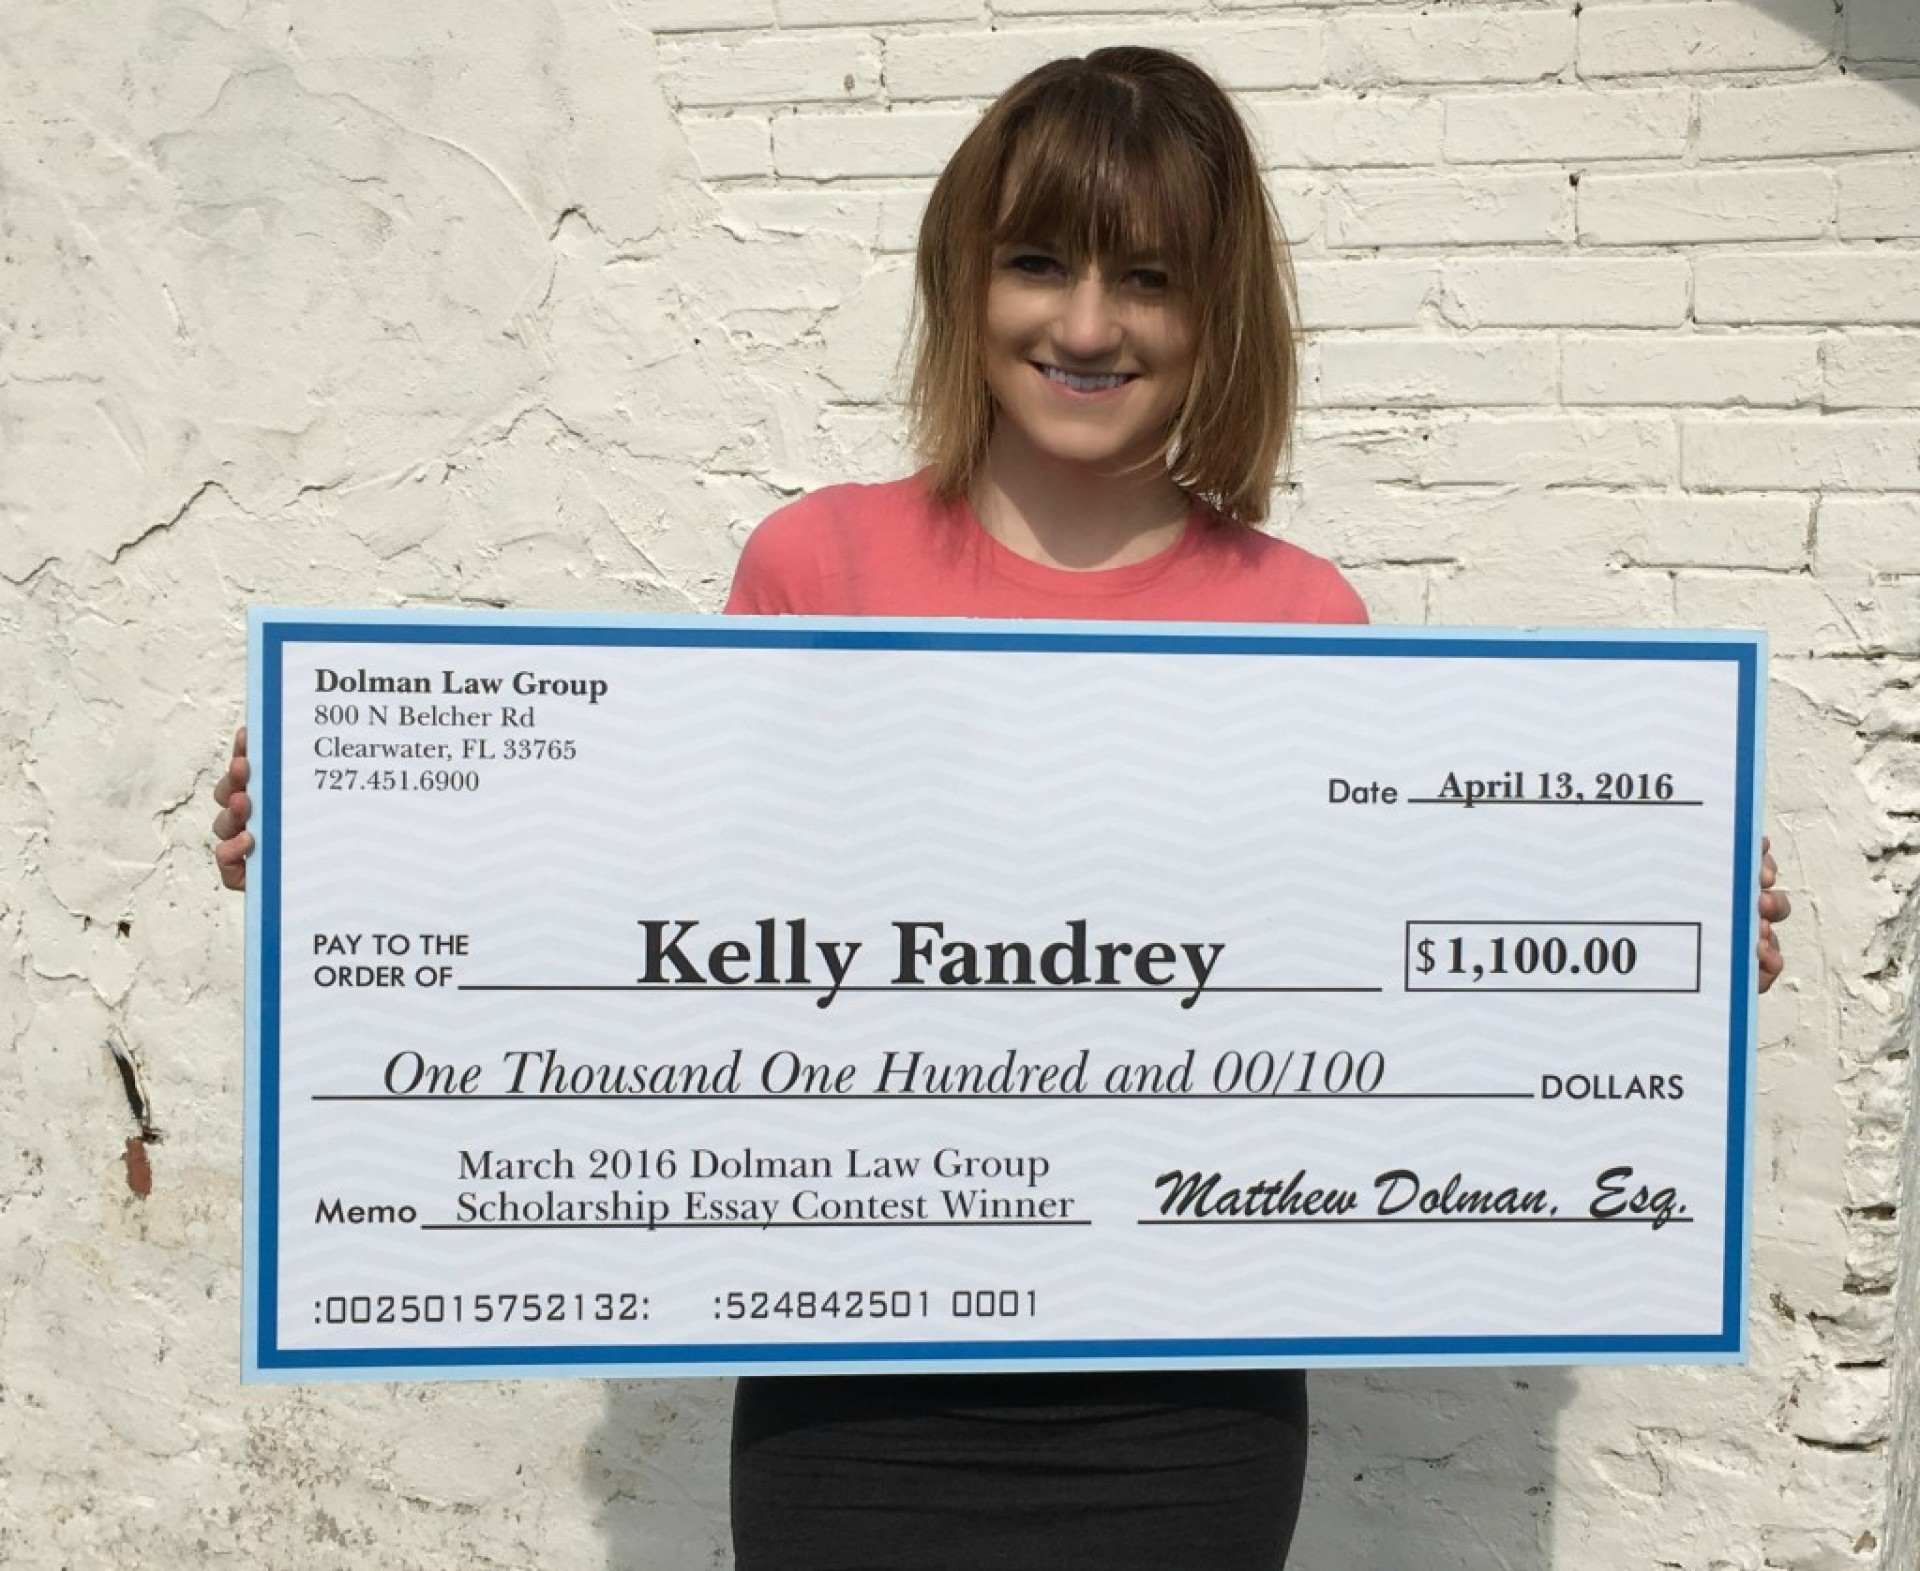 019 Kelly Fandrey 1024x838 Scholarship Essay Contest Astounding Contests For High School Students 2019 Middle 1920